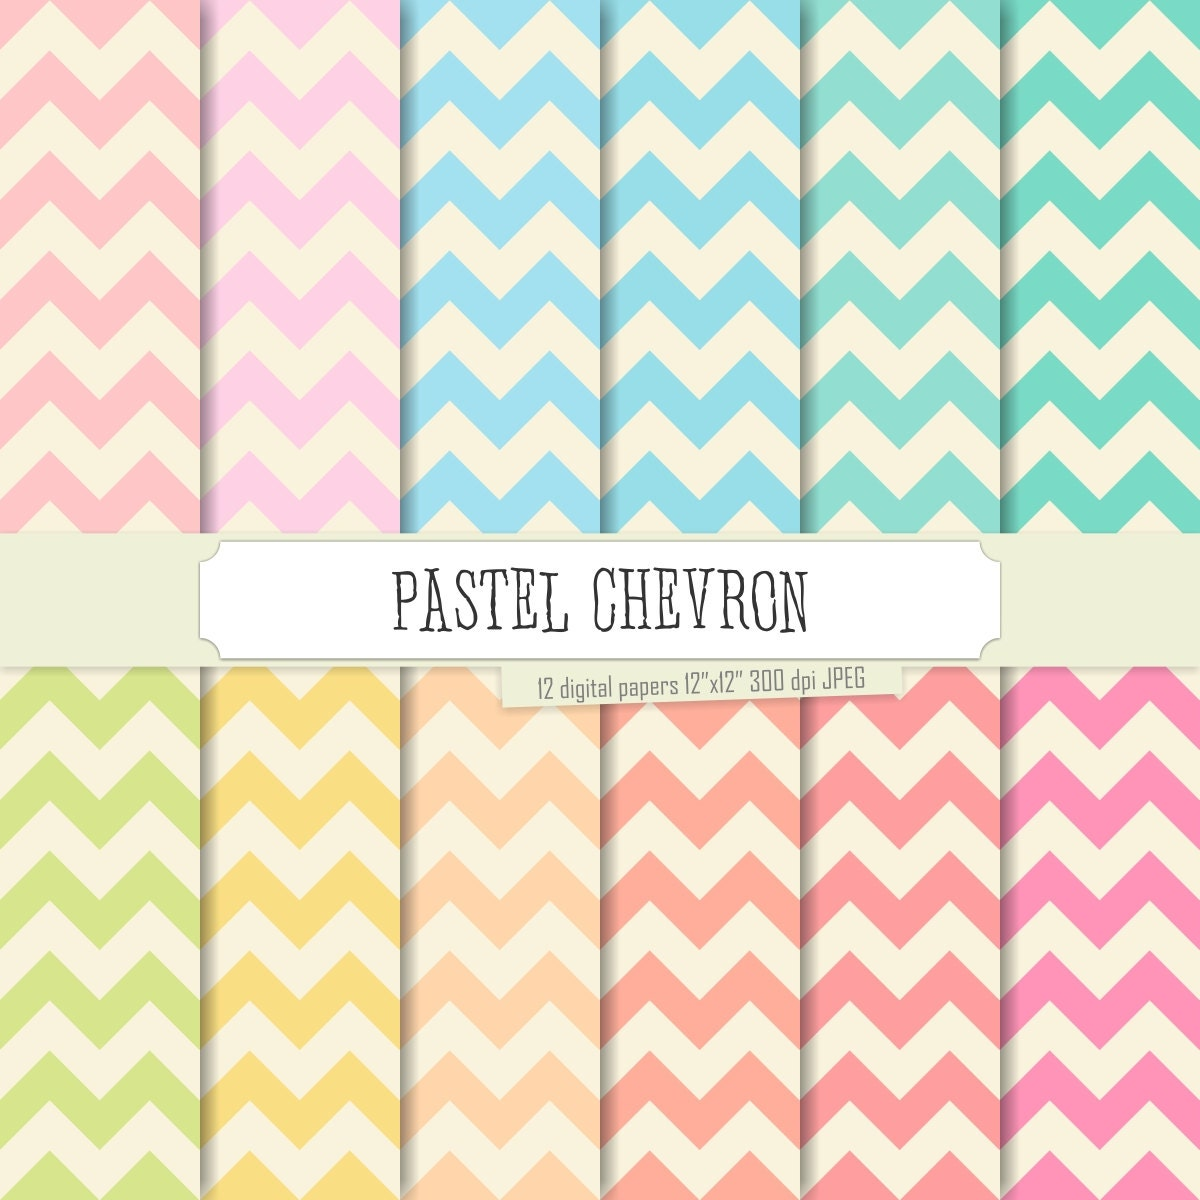 pastel chevron wallpaper - photo #13